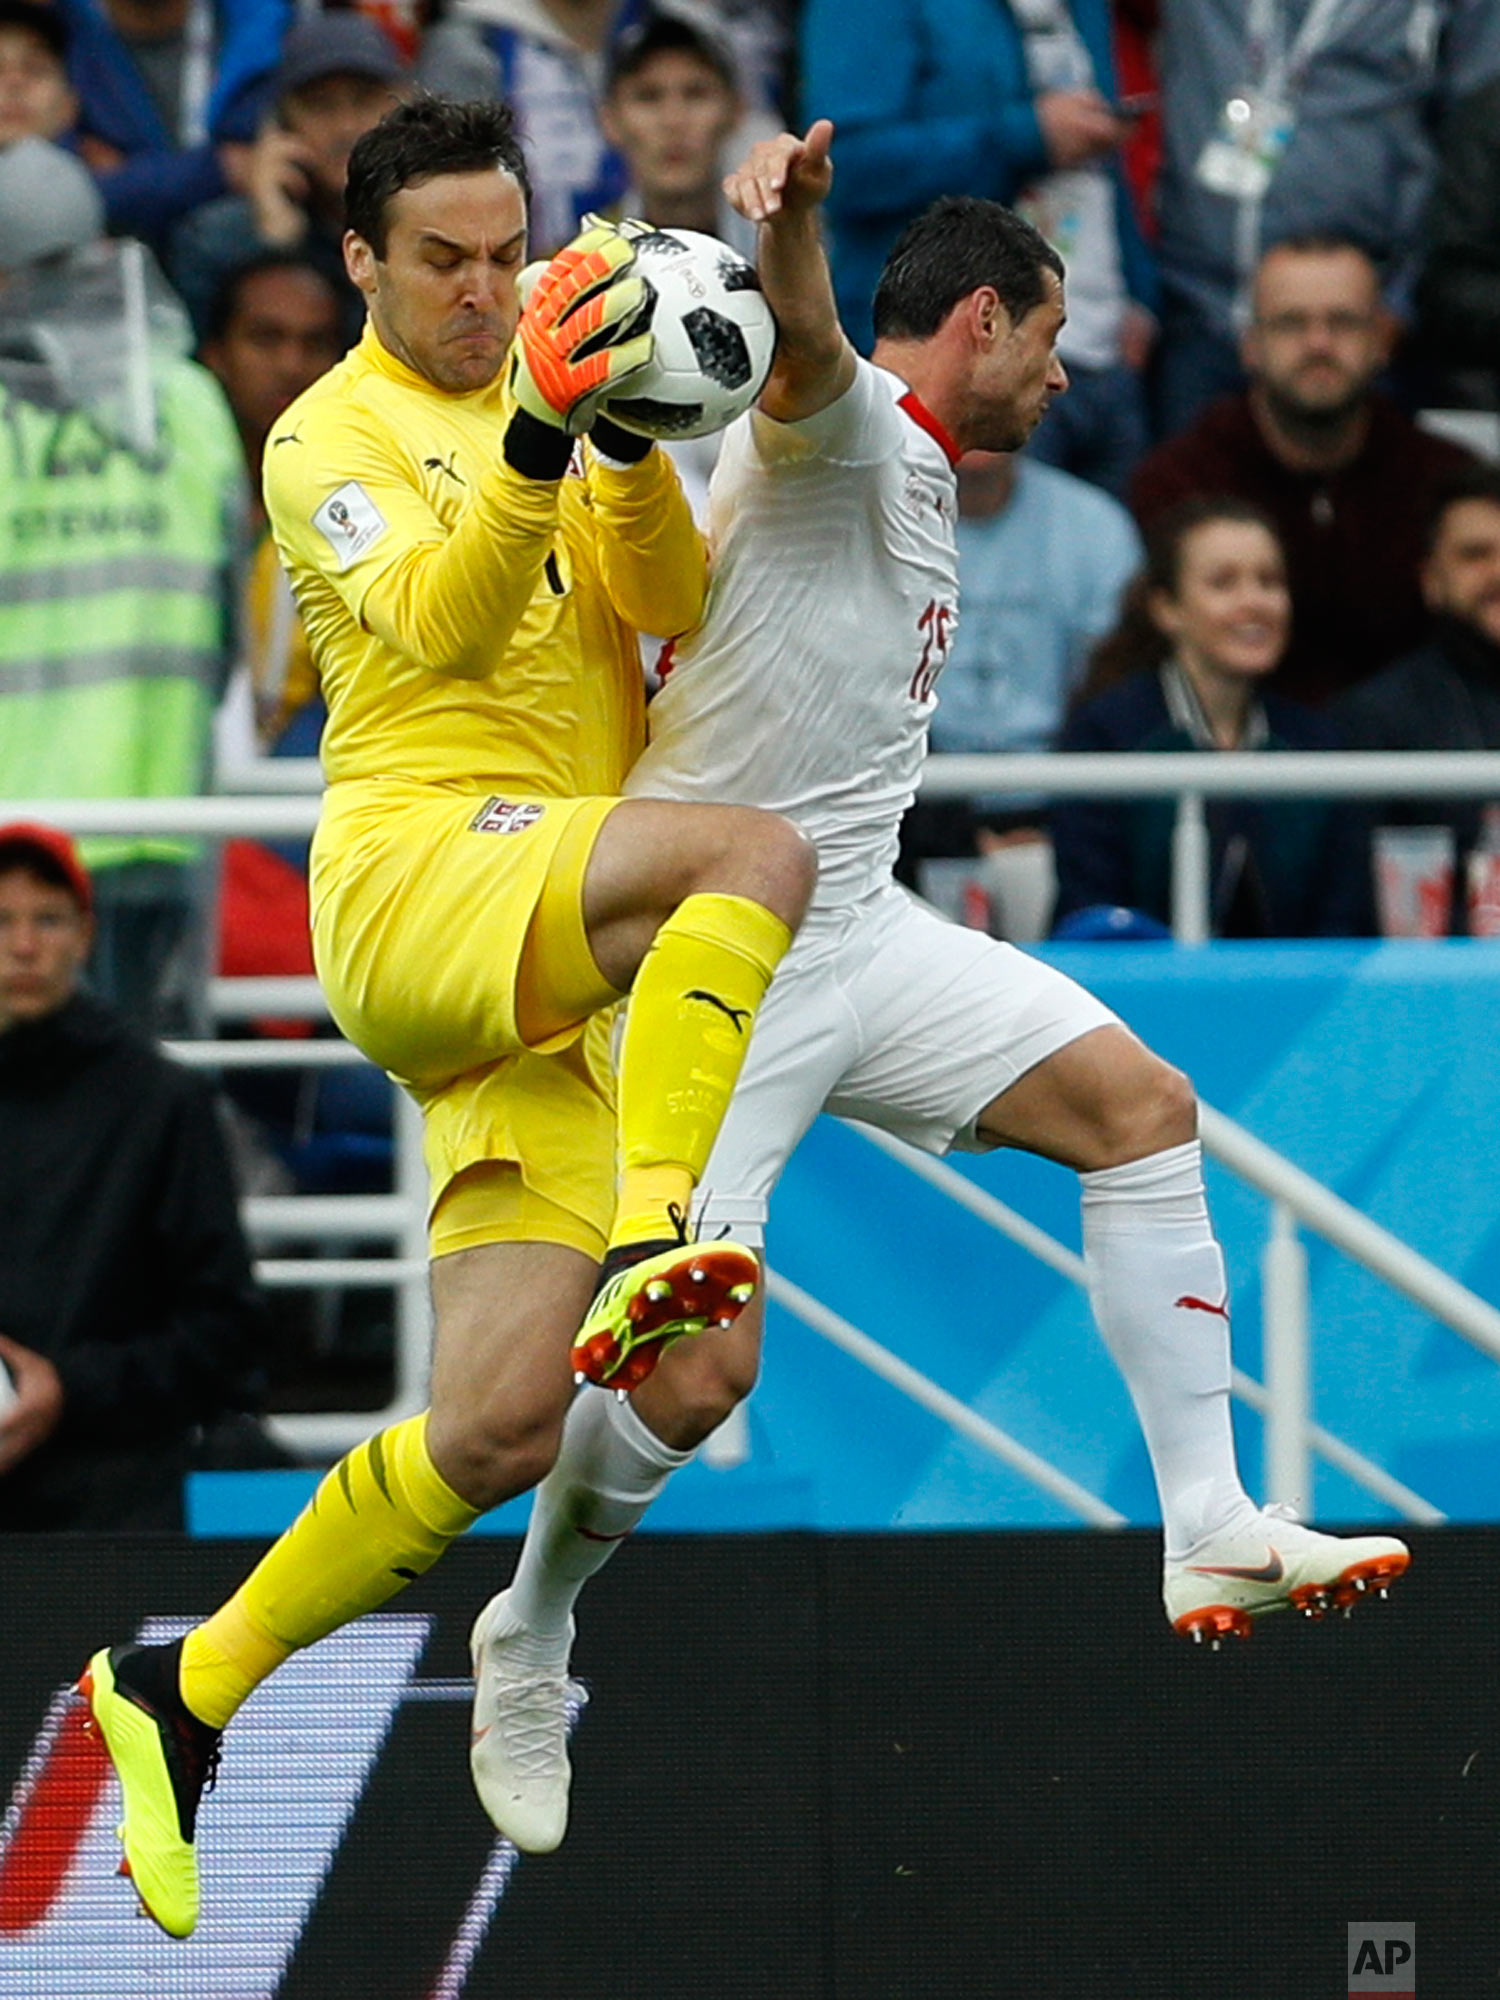 Serbia goalkeeper Vladimir Stojkovic cuts off a shot during the group E match between Switzerland and Serbia at the 2018 soccer World Cup in the Kaliningrad Stadium in Kaliningrad, Russia, Friday, June 22, 2018. (AP Photo/Victor Caivano)